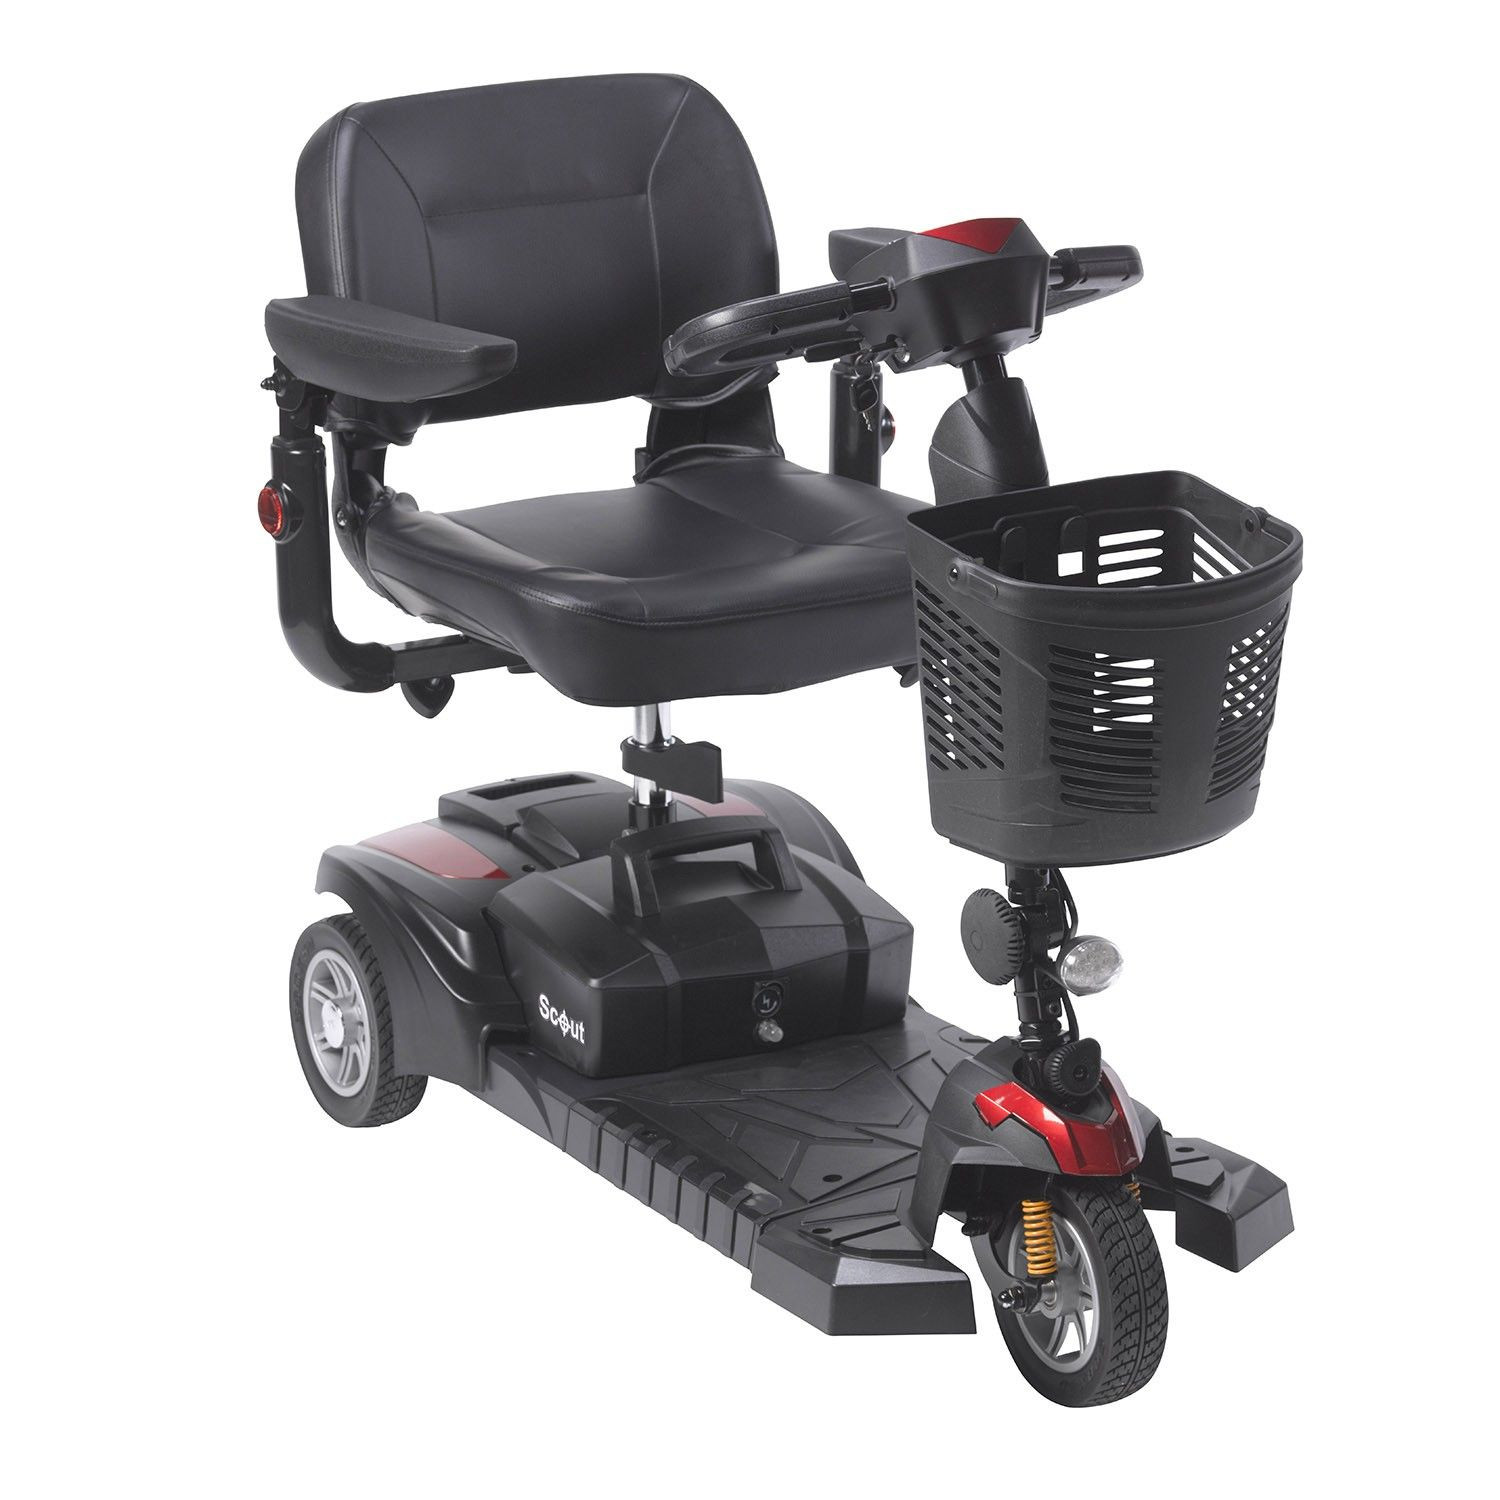 Mobility Scooters For Sale >> Scout Dst 3 Wheel Mobility Scooter For Sale Most Affordable Price